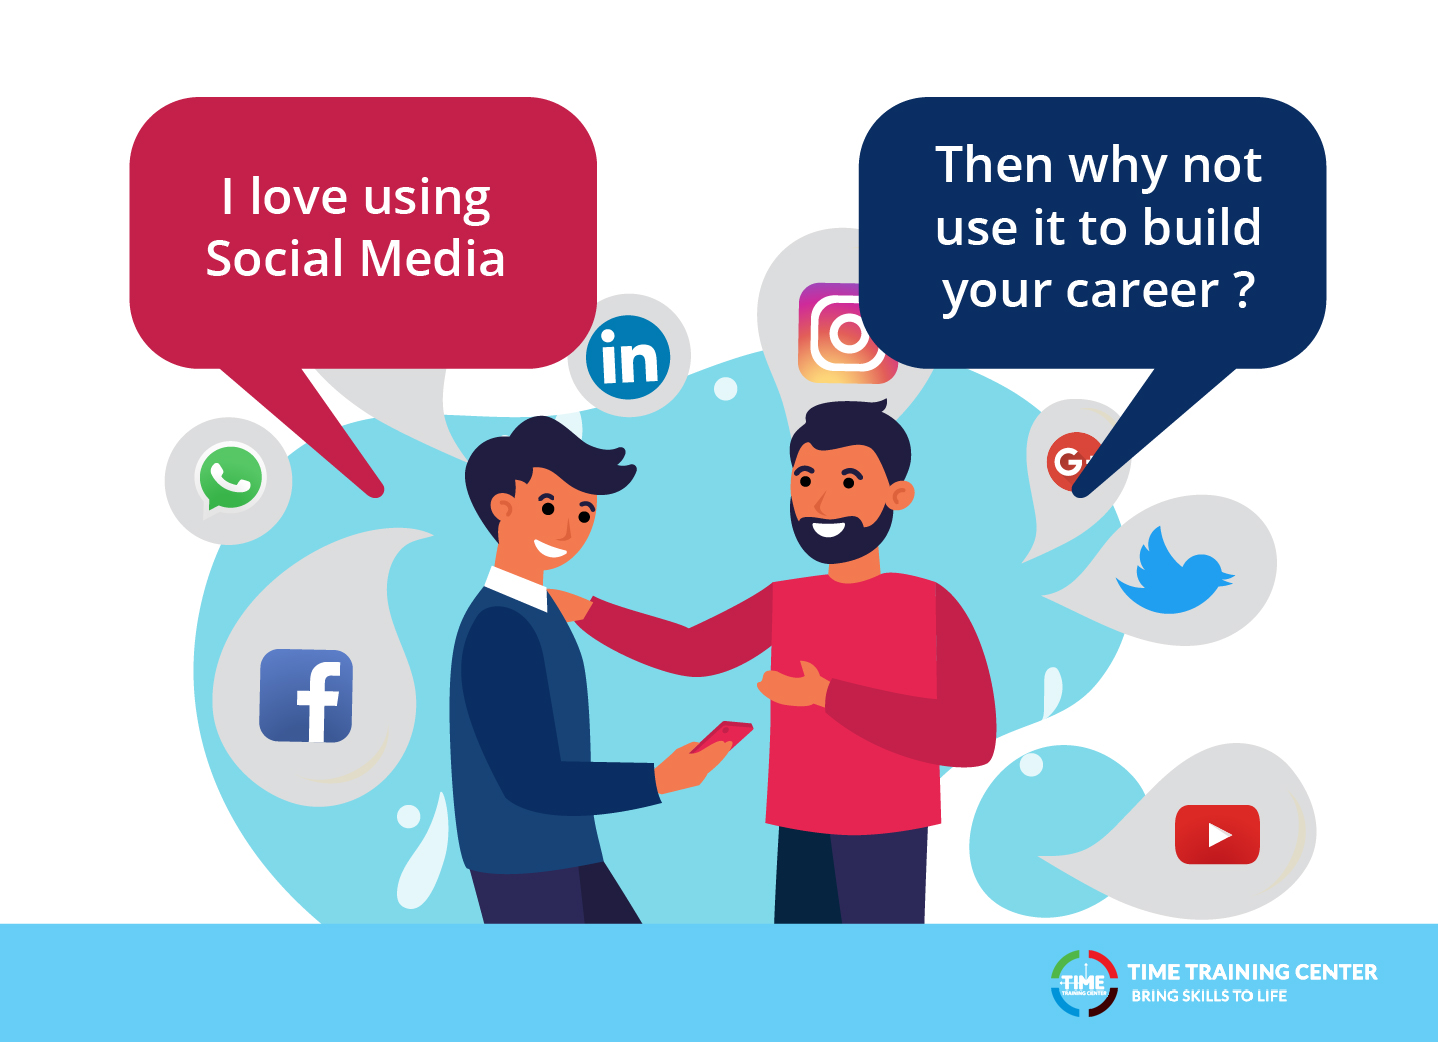 5 Tips on How to Boost Your Career with Social Media